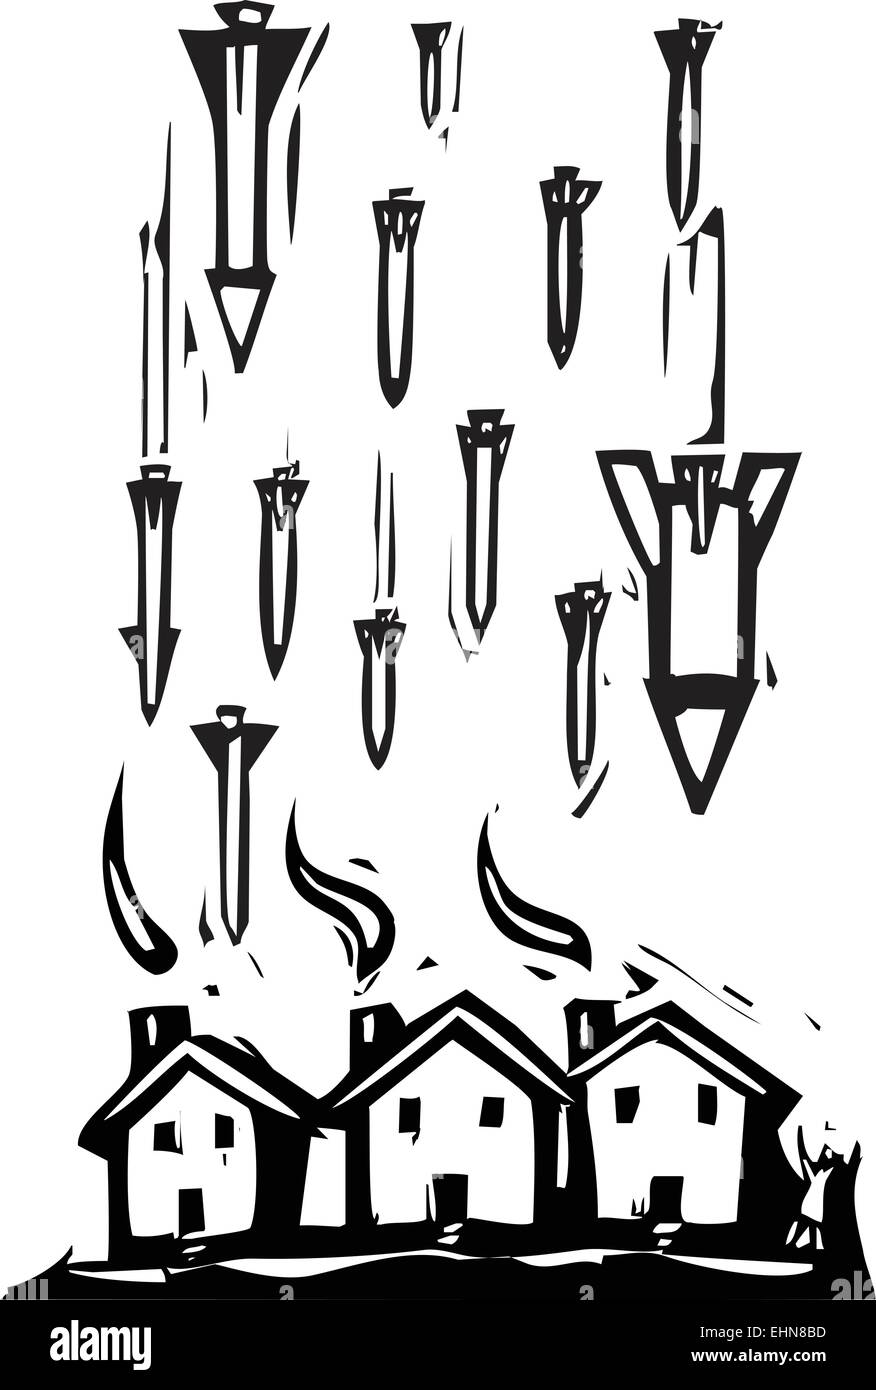 Woodcut style image of missiles falling on houses. Stock Vector